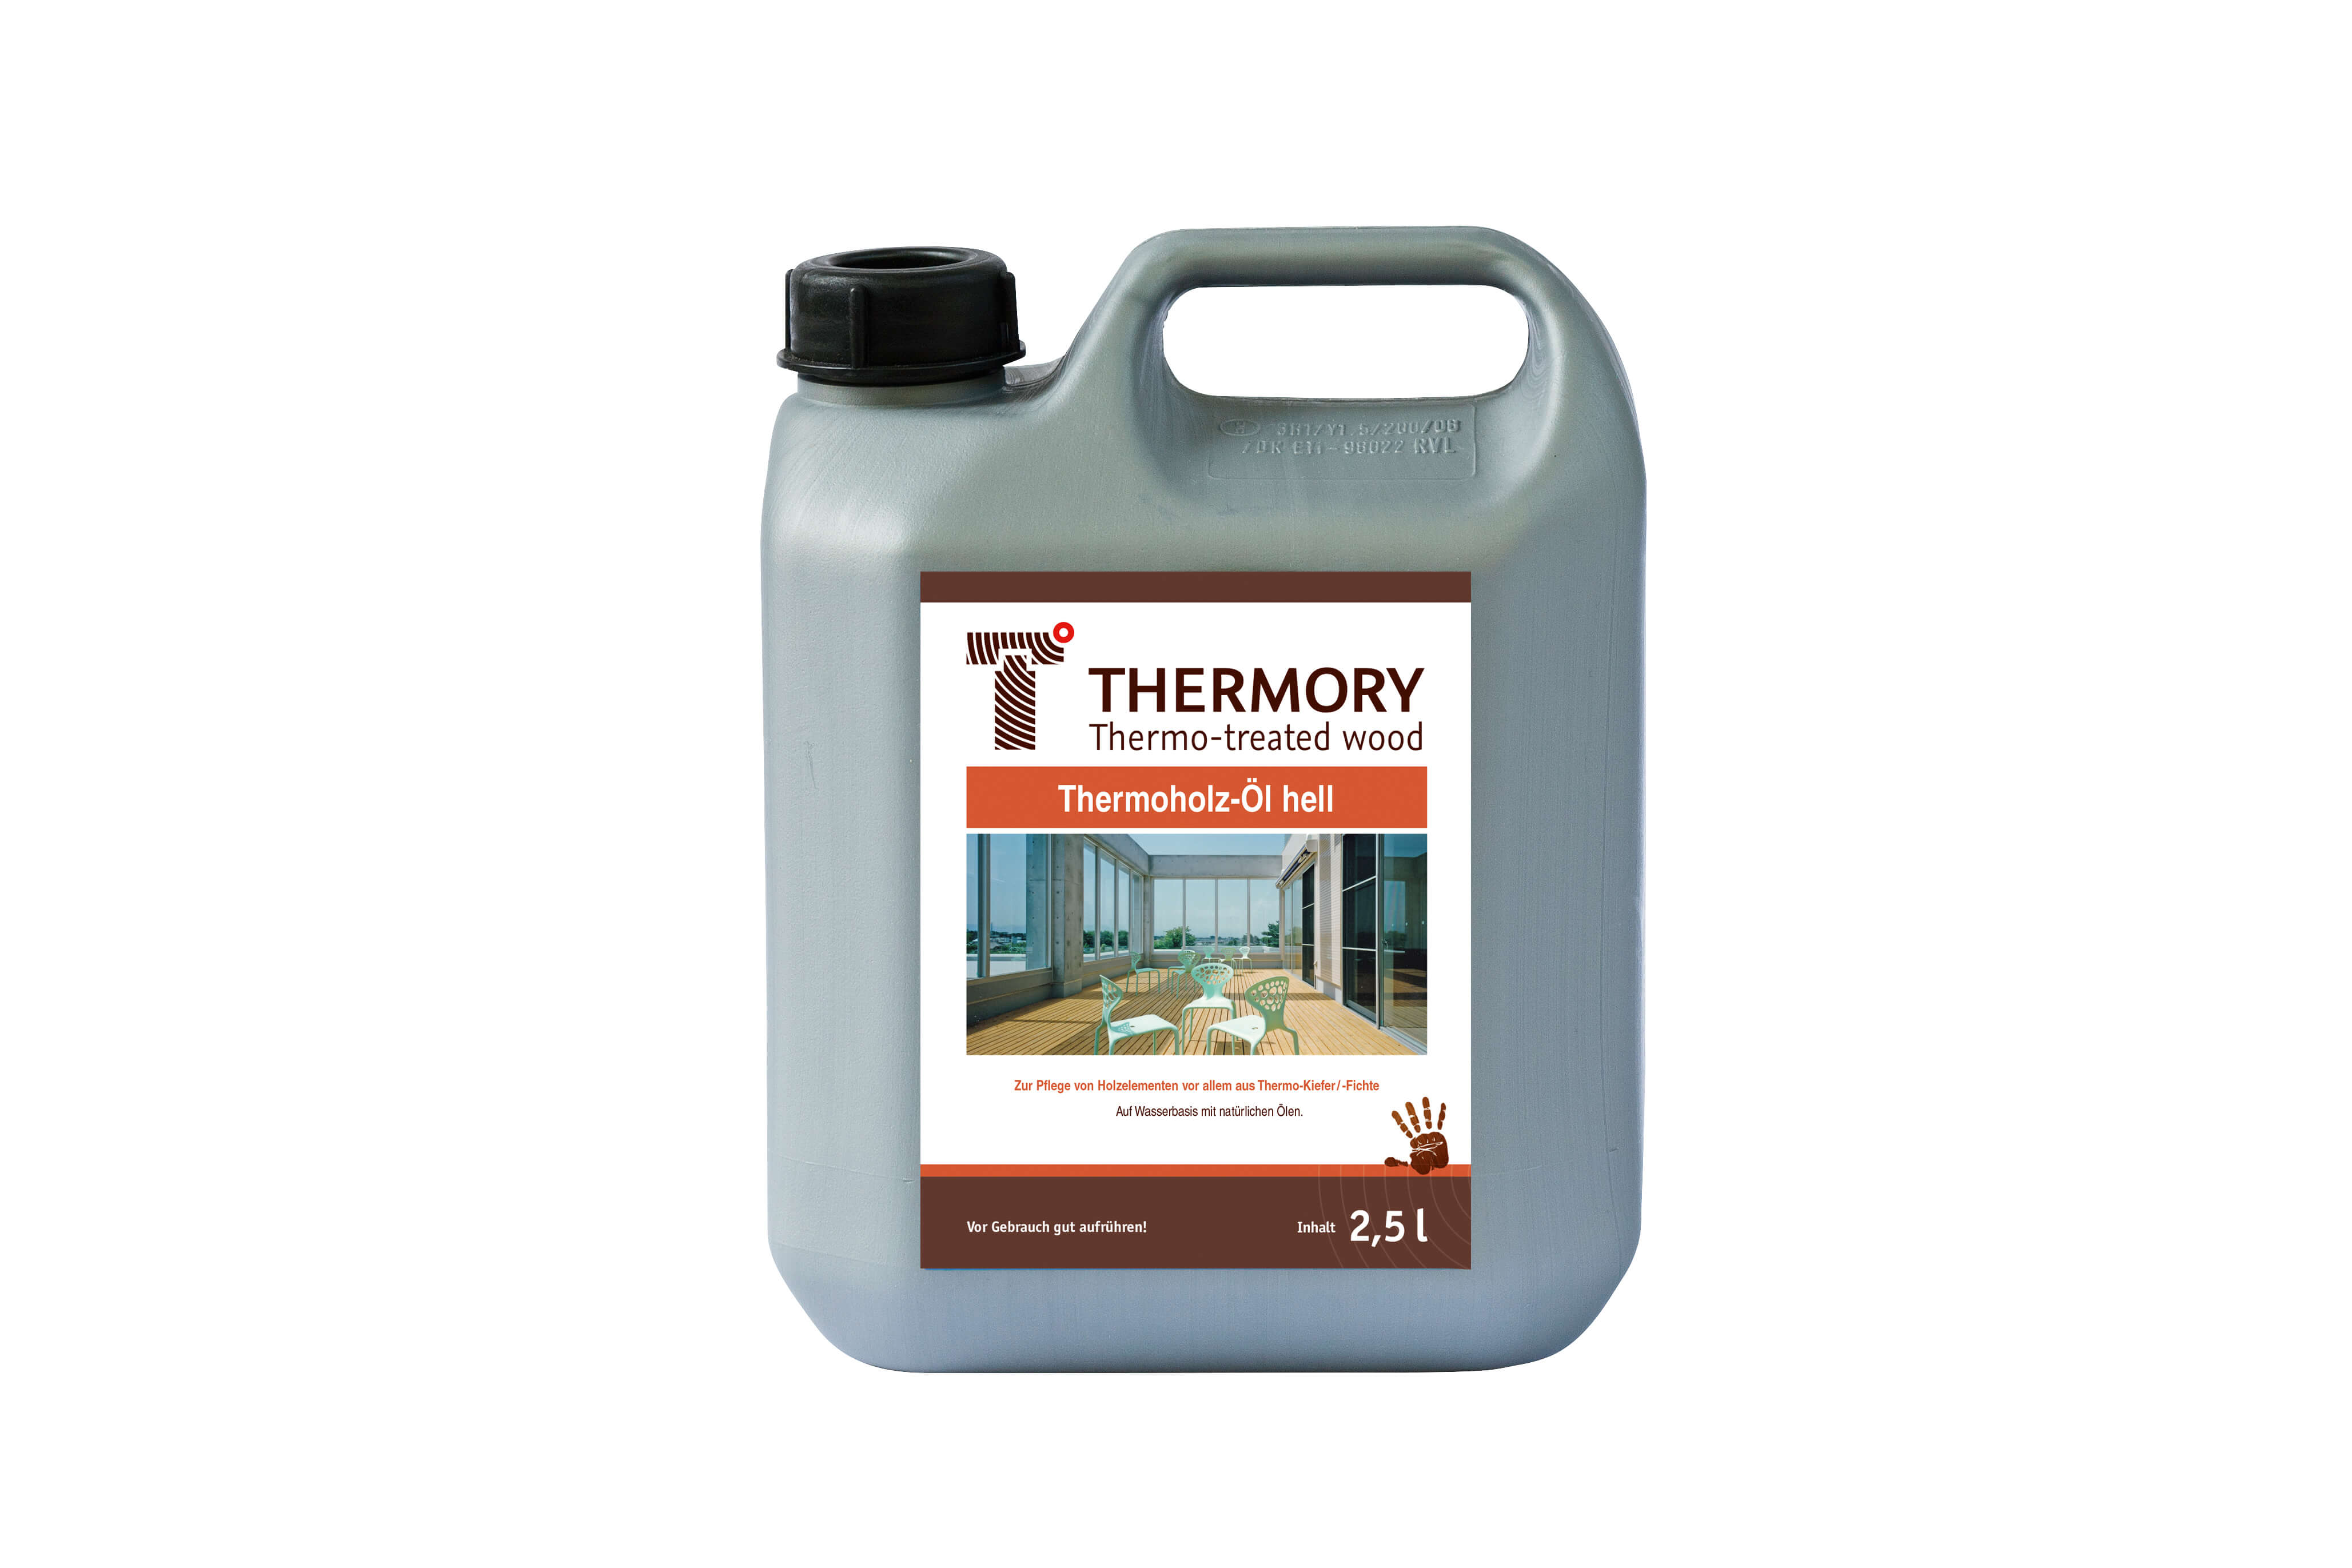 Thermoholz Fassade Wandpaneele Aus Thermofichte Gun Powder 20x186mm